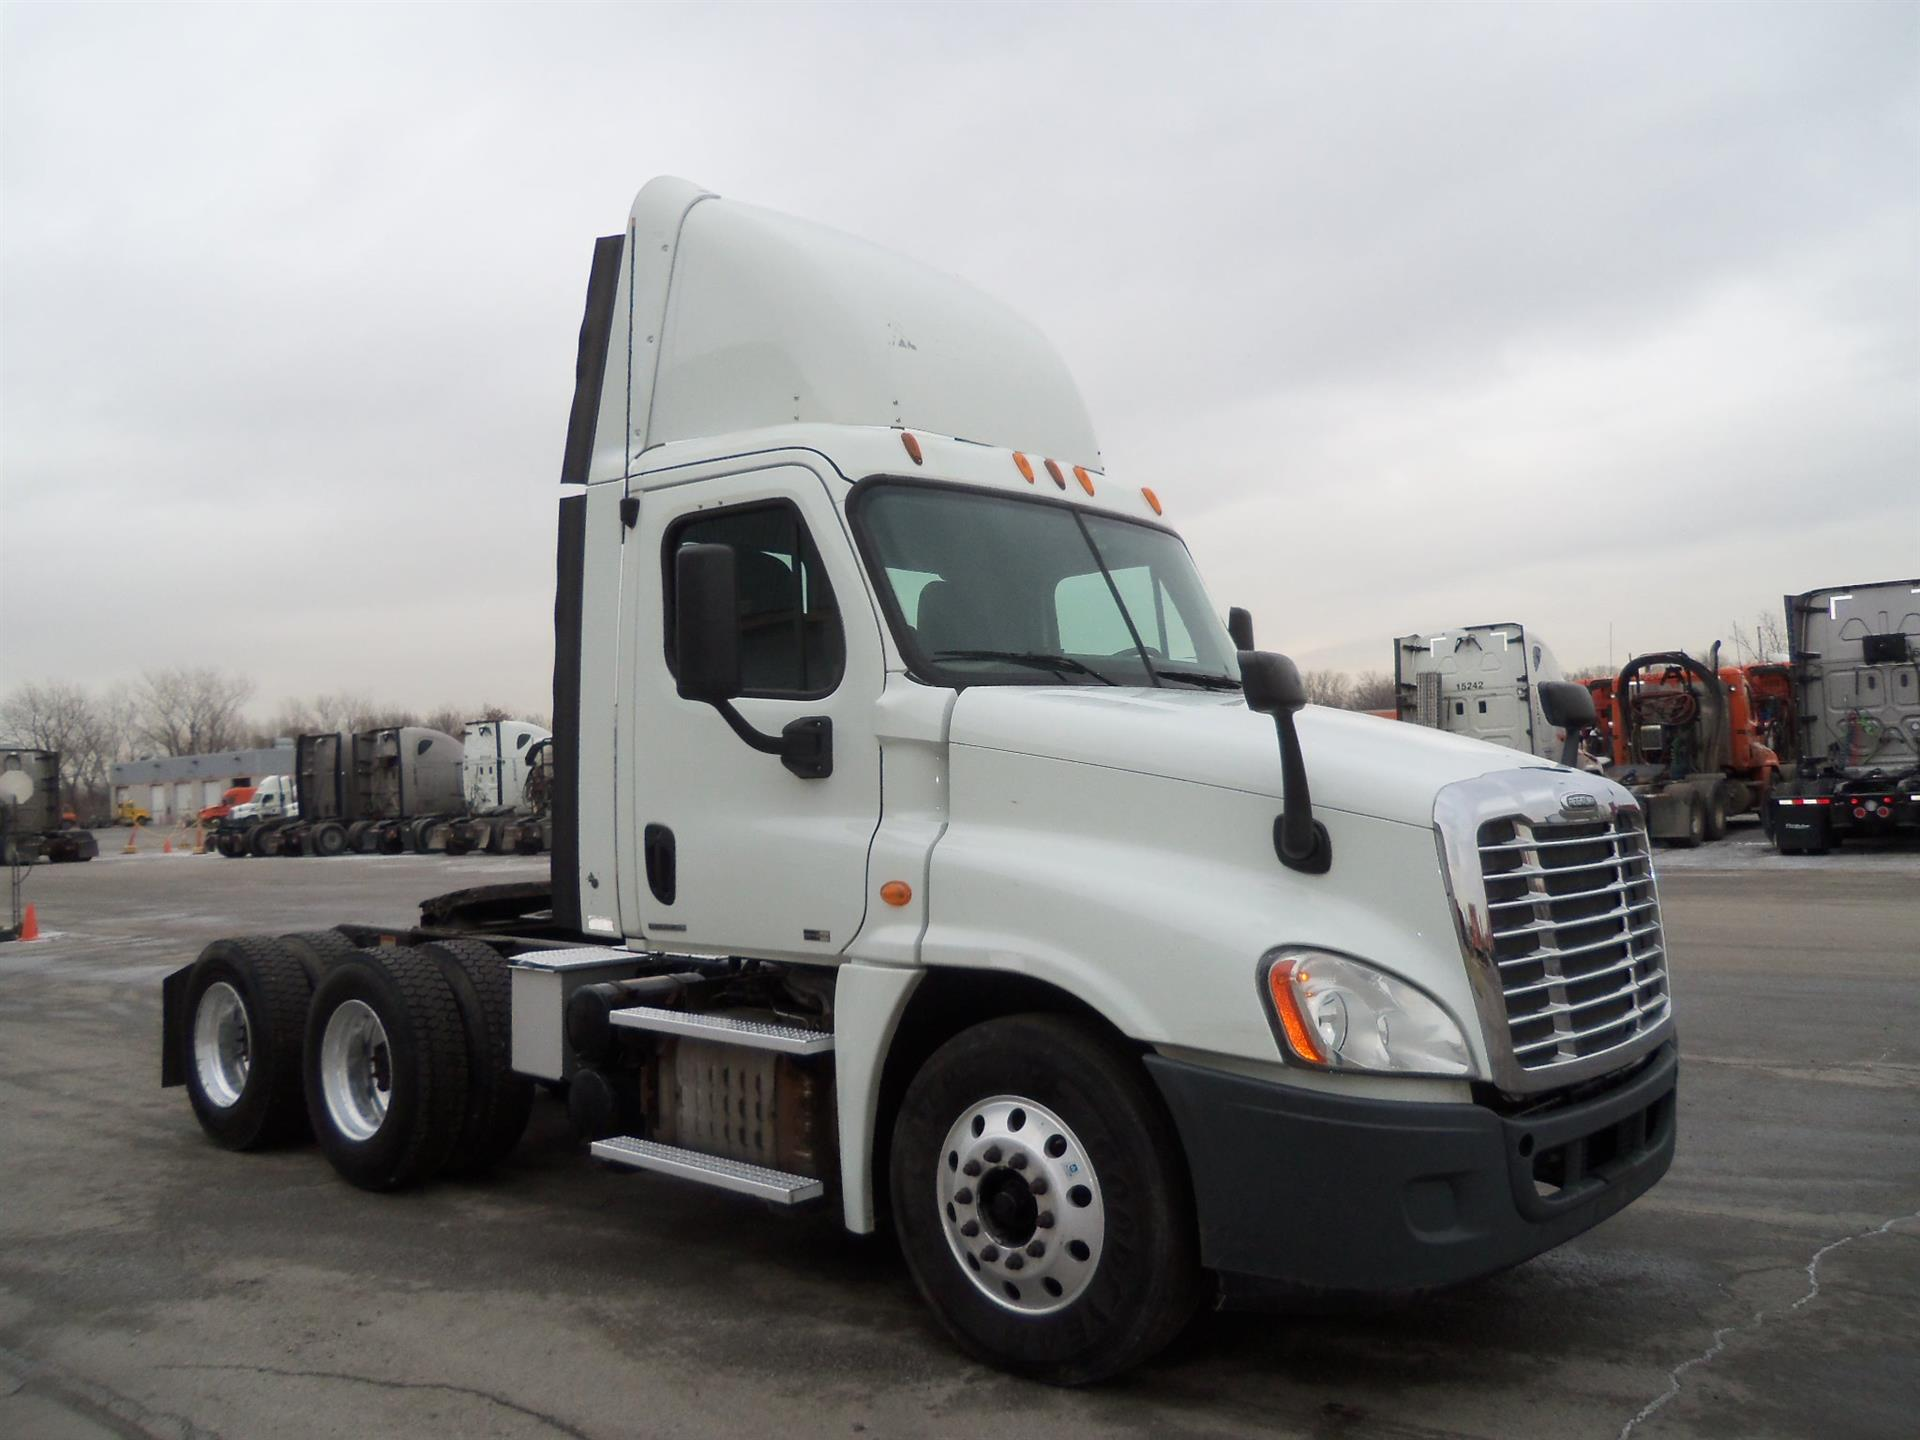 USED 2012 FREIGHTLINER CASCADIA DAYCAB TRUCK #84474